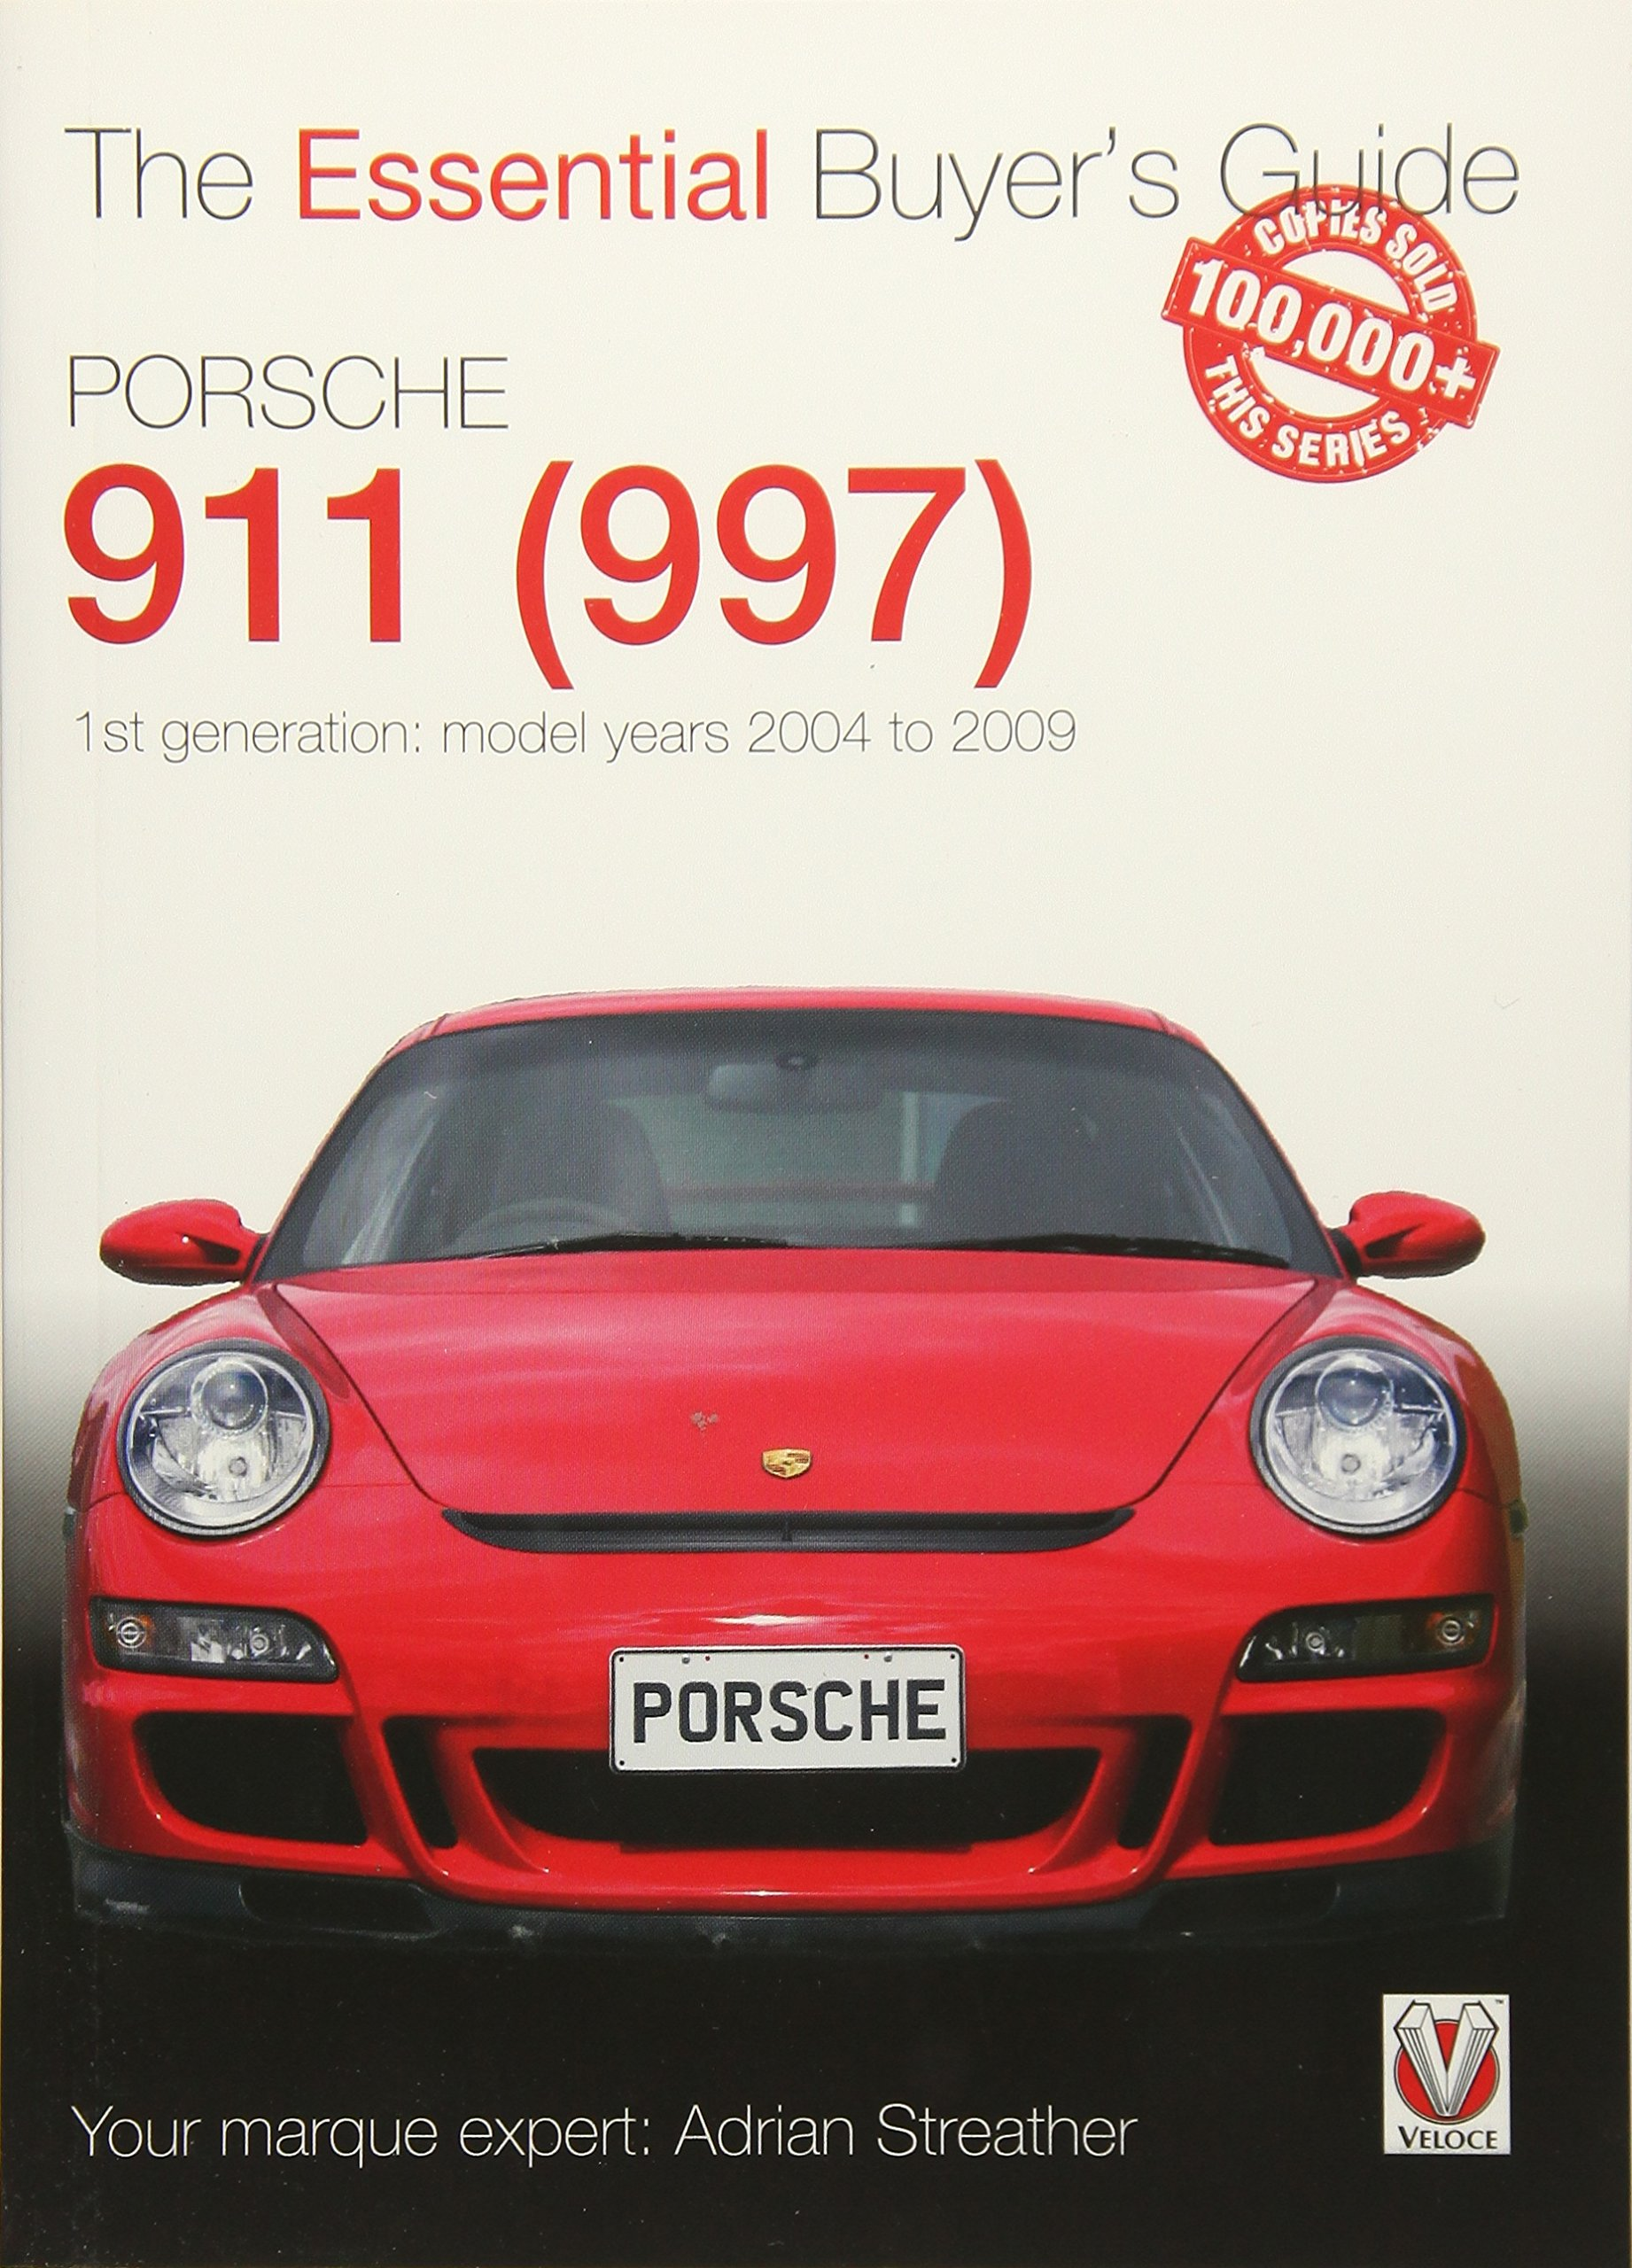 Porsche 911 (997) - 1st generation: model years 2004 to 2009 (Essential Buyer's Guide) pdf